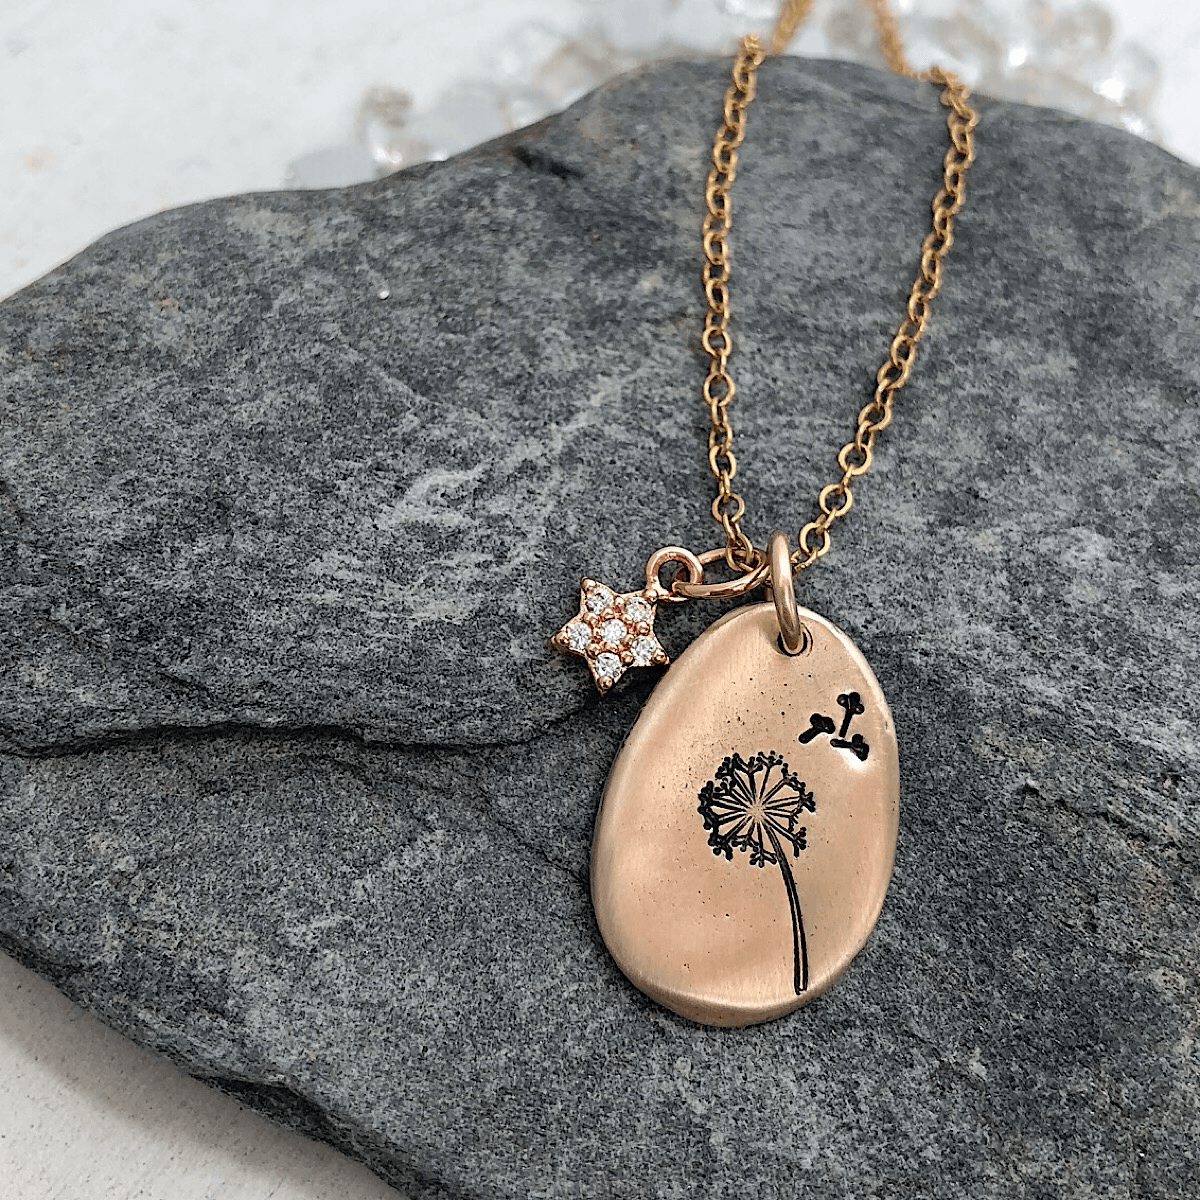 Make a Wish Pebble Necklace  - IsabelleGraceJewelry